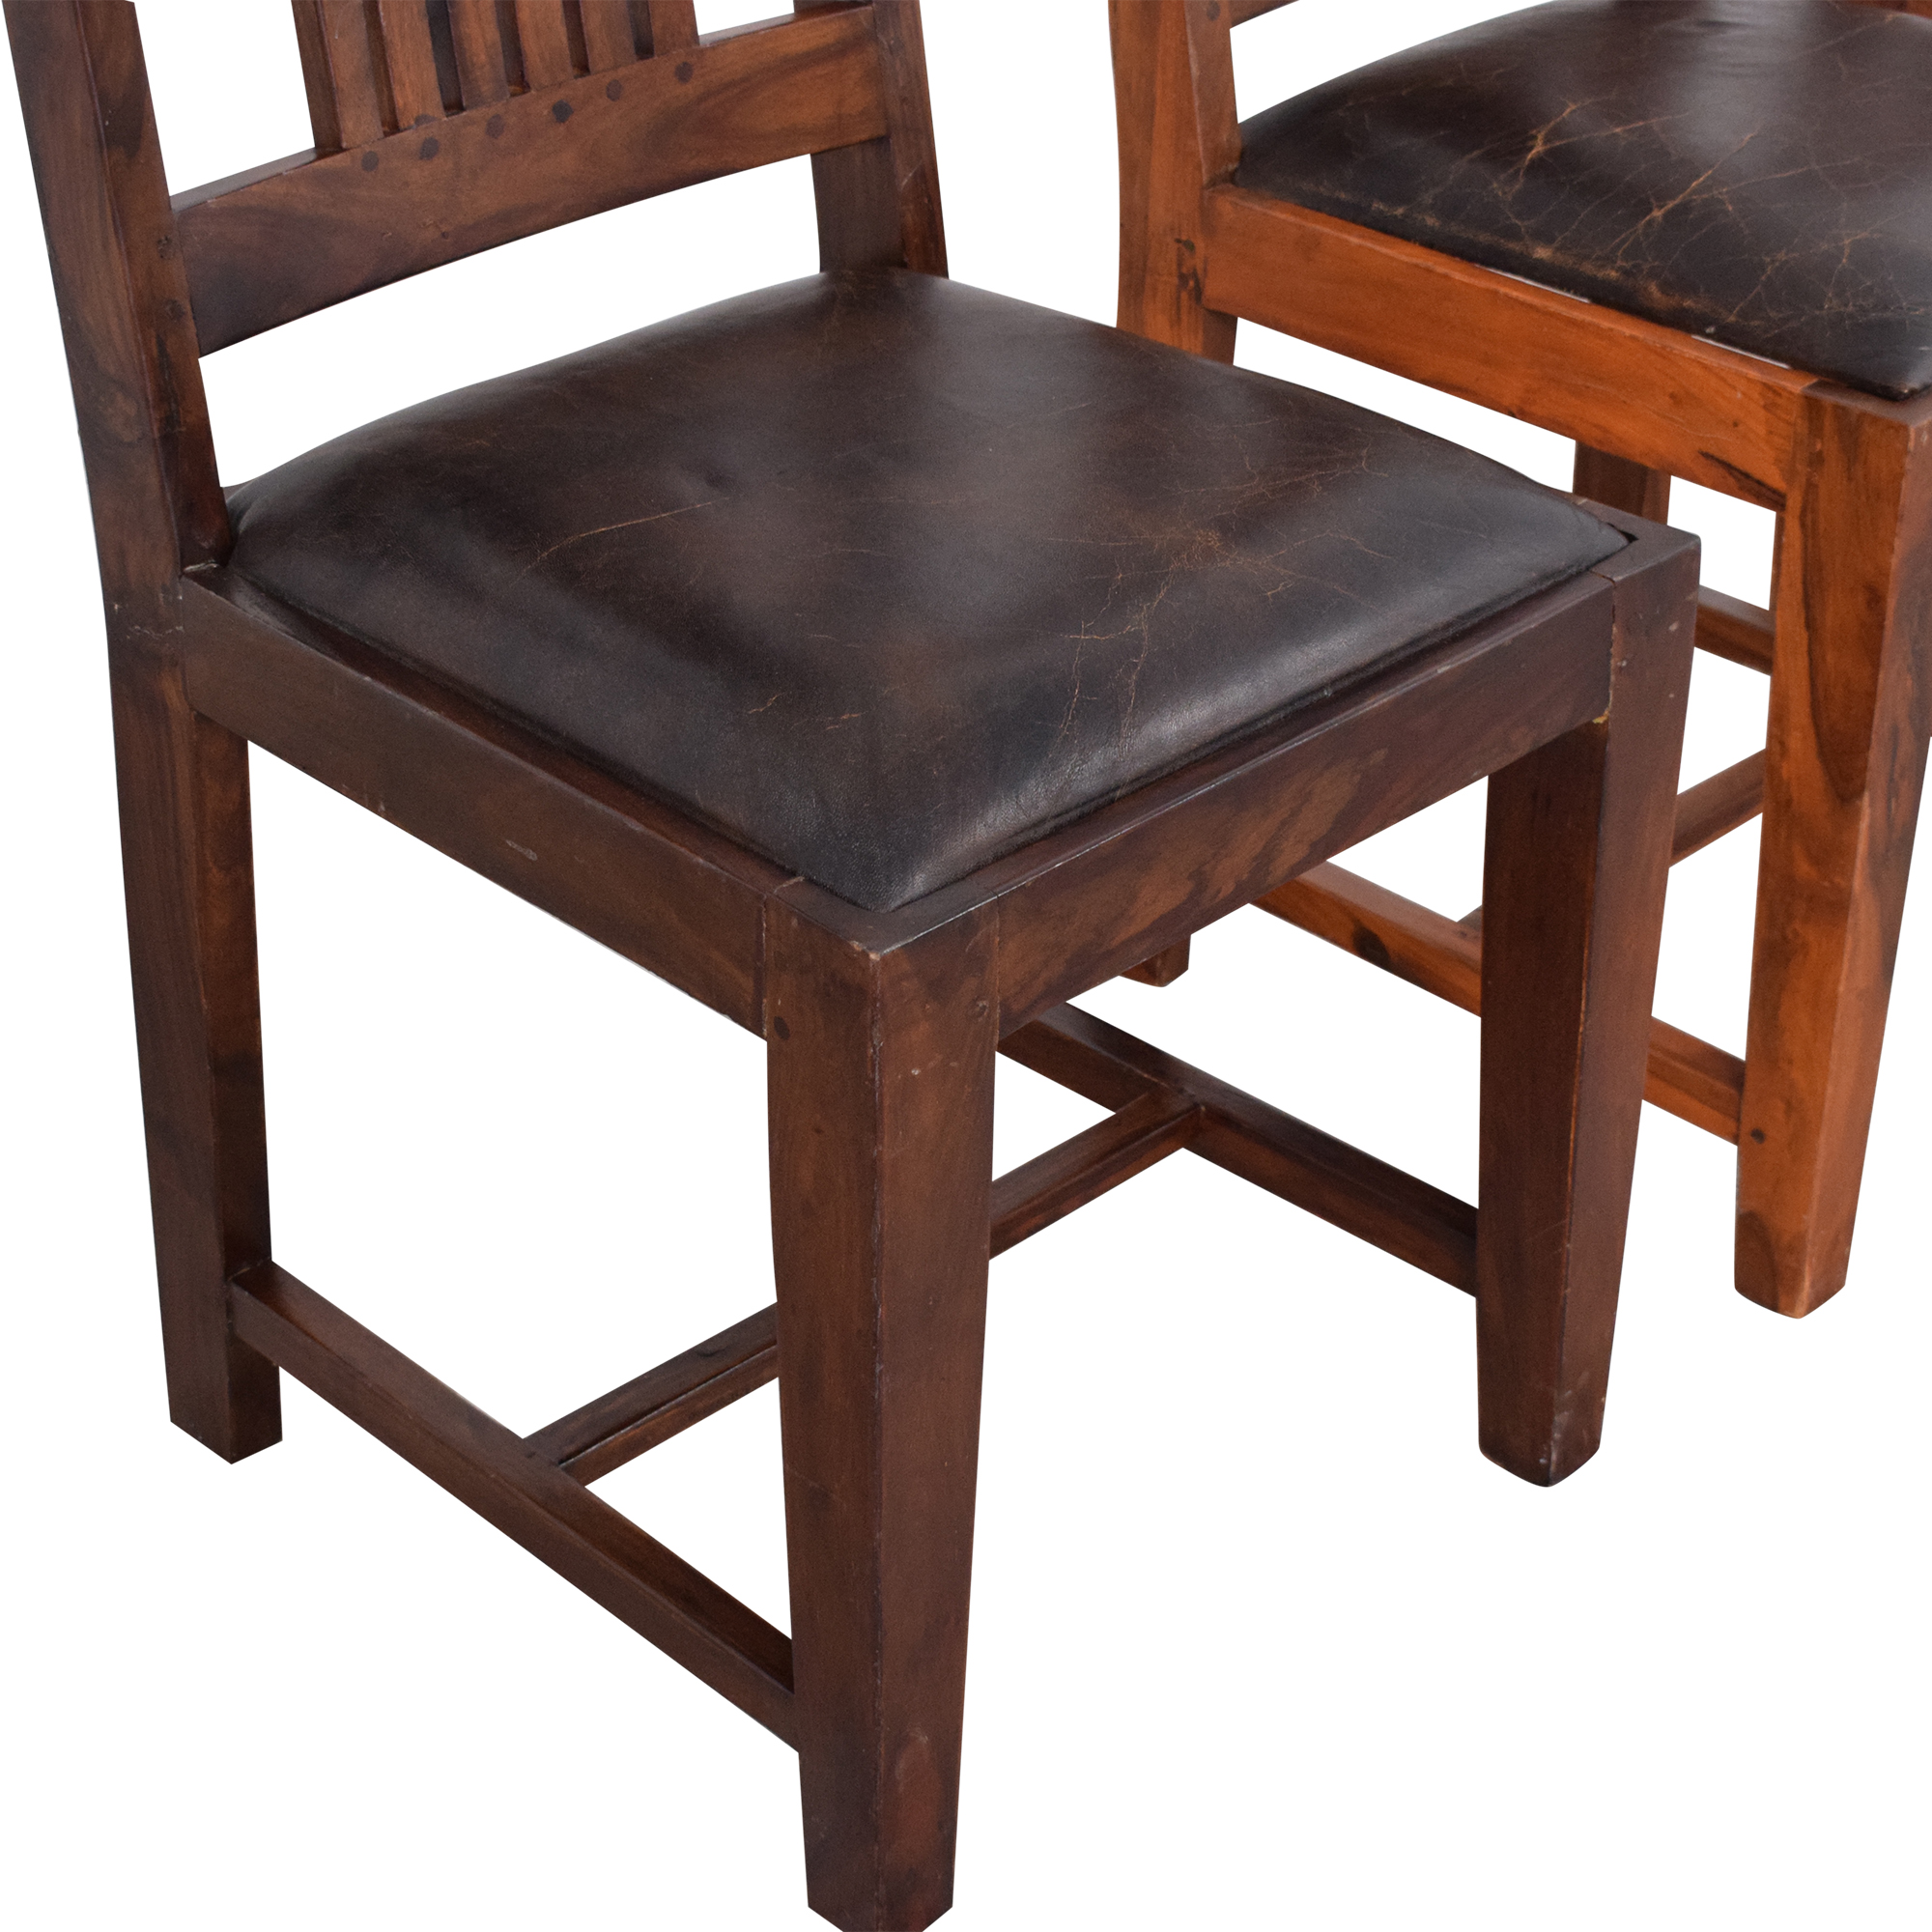 ABC Carpet & Home ABC Carpet & Home Dining Chairs price